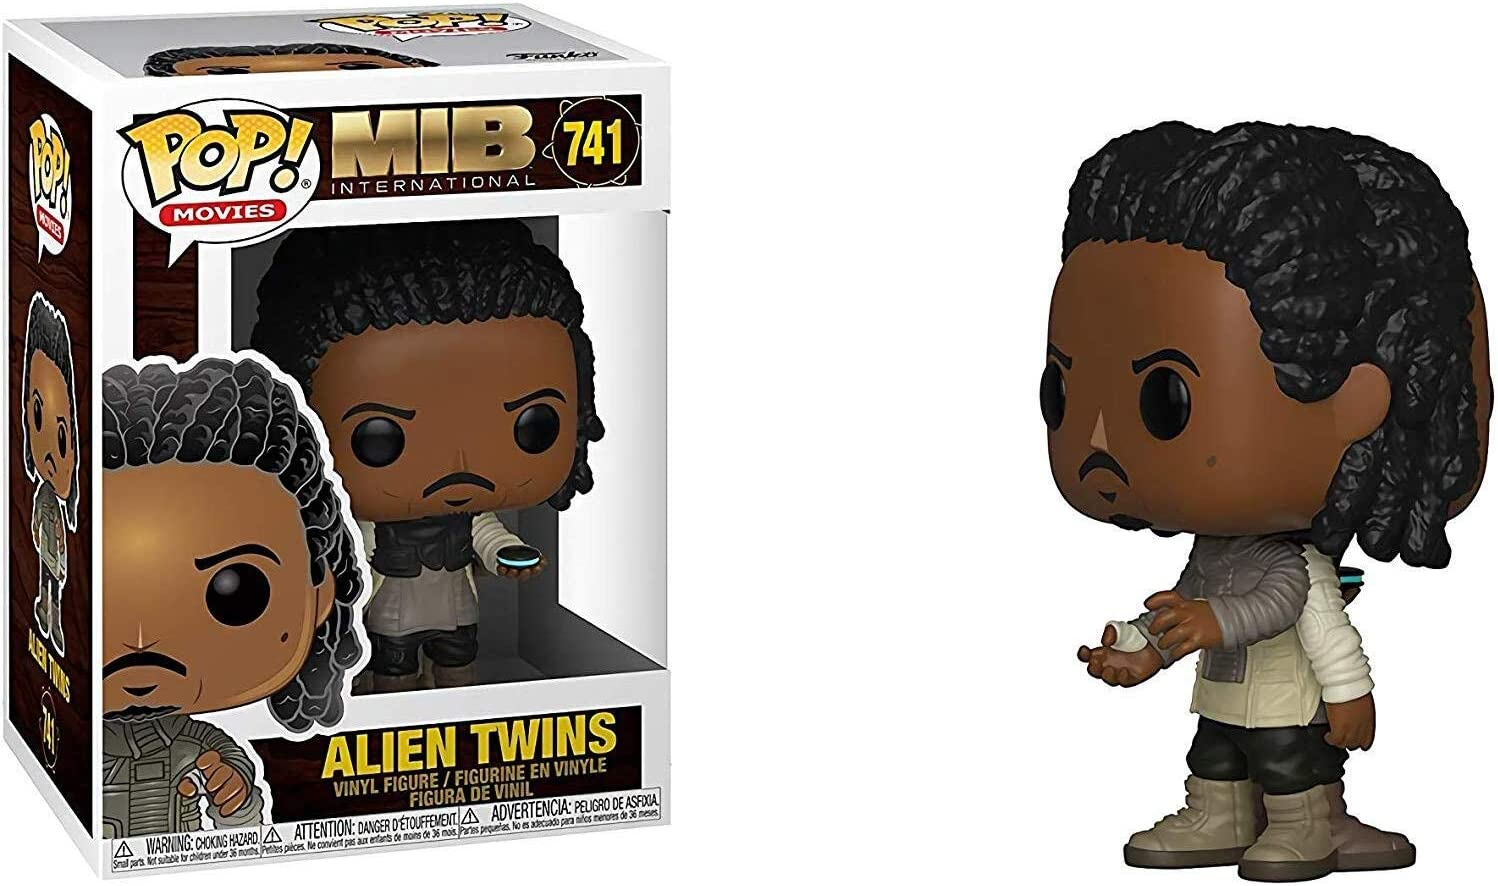 Funko- Pop Vinilo: Men in Black International: Alien Twins Figura Coleccionable, Multicolor, Talla única (38494): Amazon.es: Juguetes y juegos